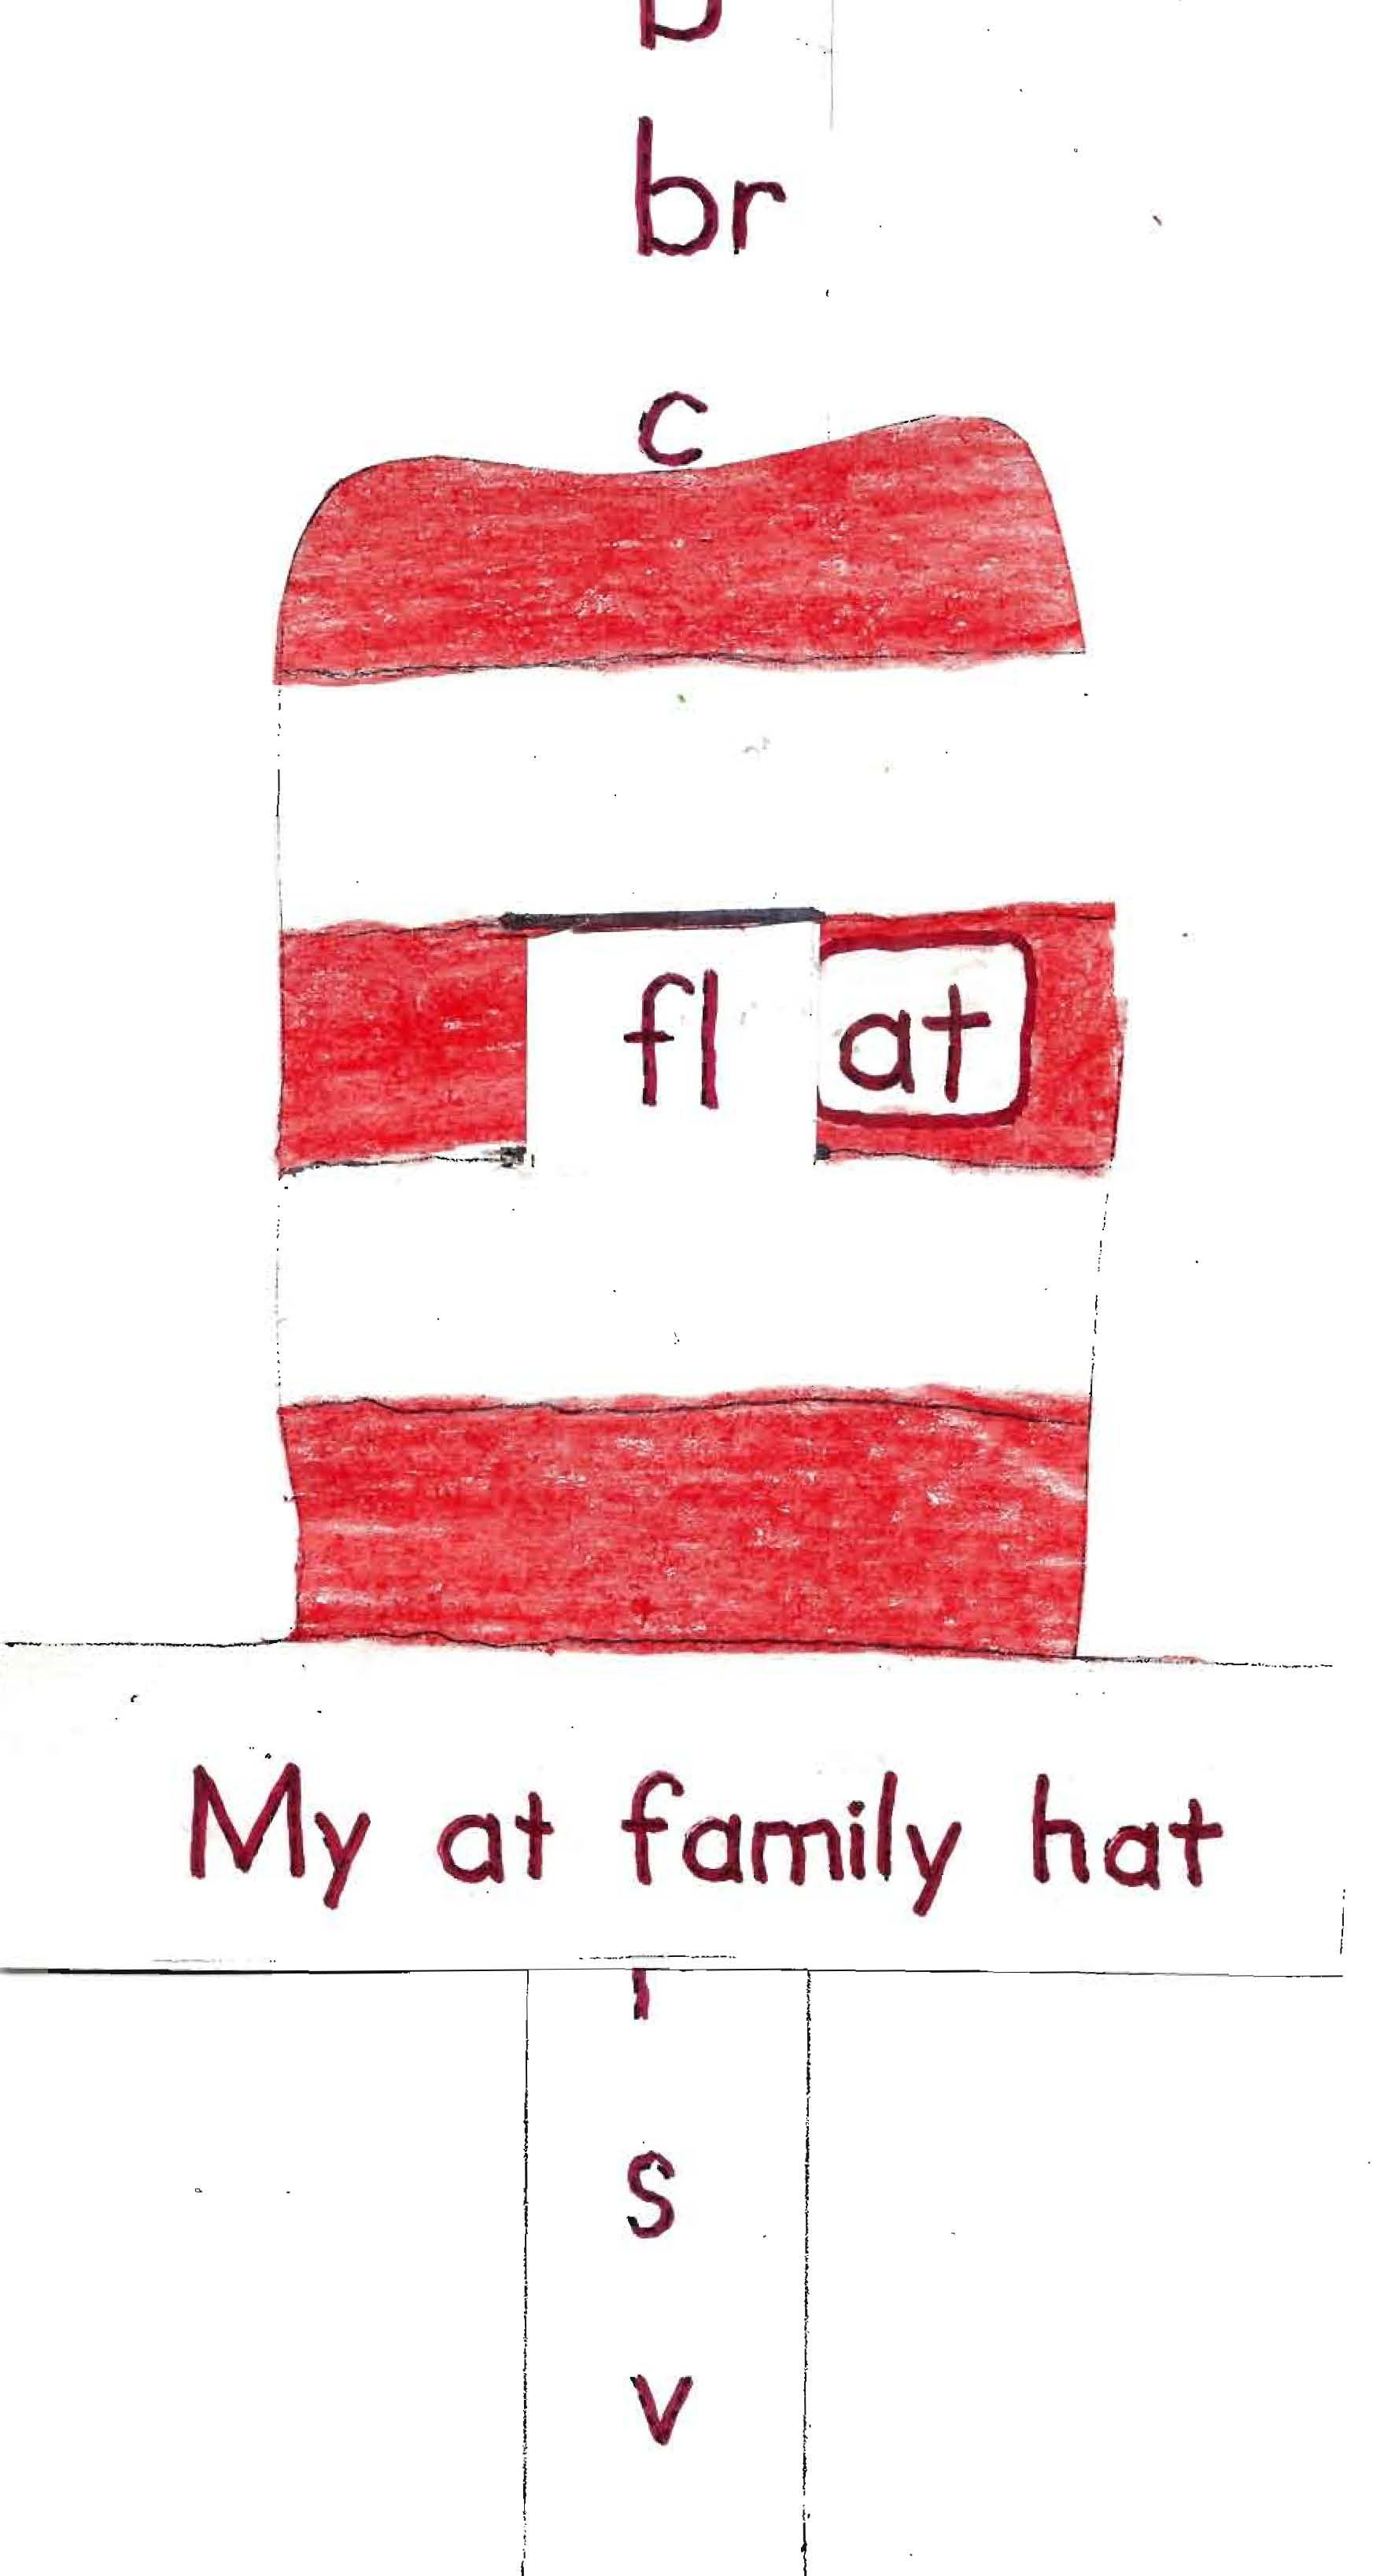 cat in the hat activities, seuss activities, cat in the hat crafts, common core seuss, common core cat in the hat, seuss crafts, seuss centers, place value activiities, grammar activities, seuss bulletin board ideas, seuss poem, cat in the hat bulletin boards, math games, seuss games, seuss math activities, fact families, elements of a story, graphic organizer templates, math centers, math games, seuss games, seuss math games,